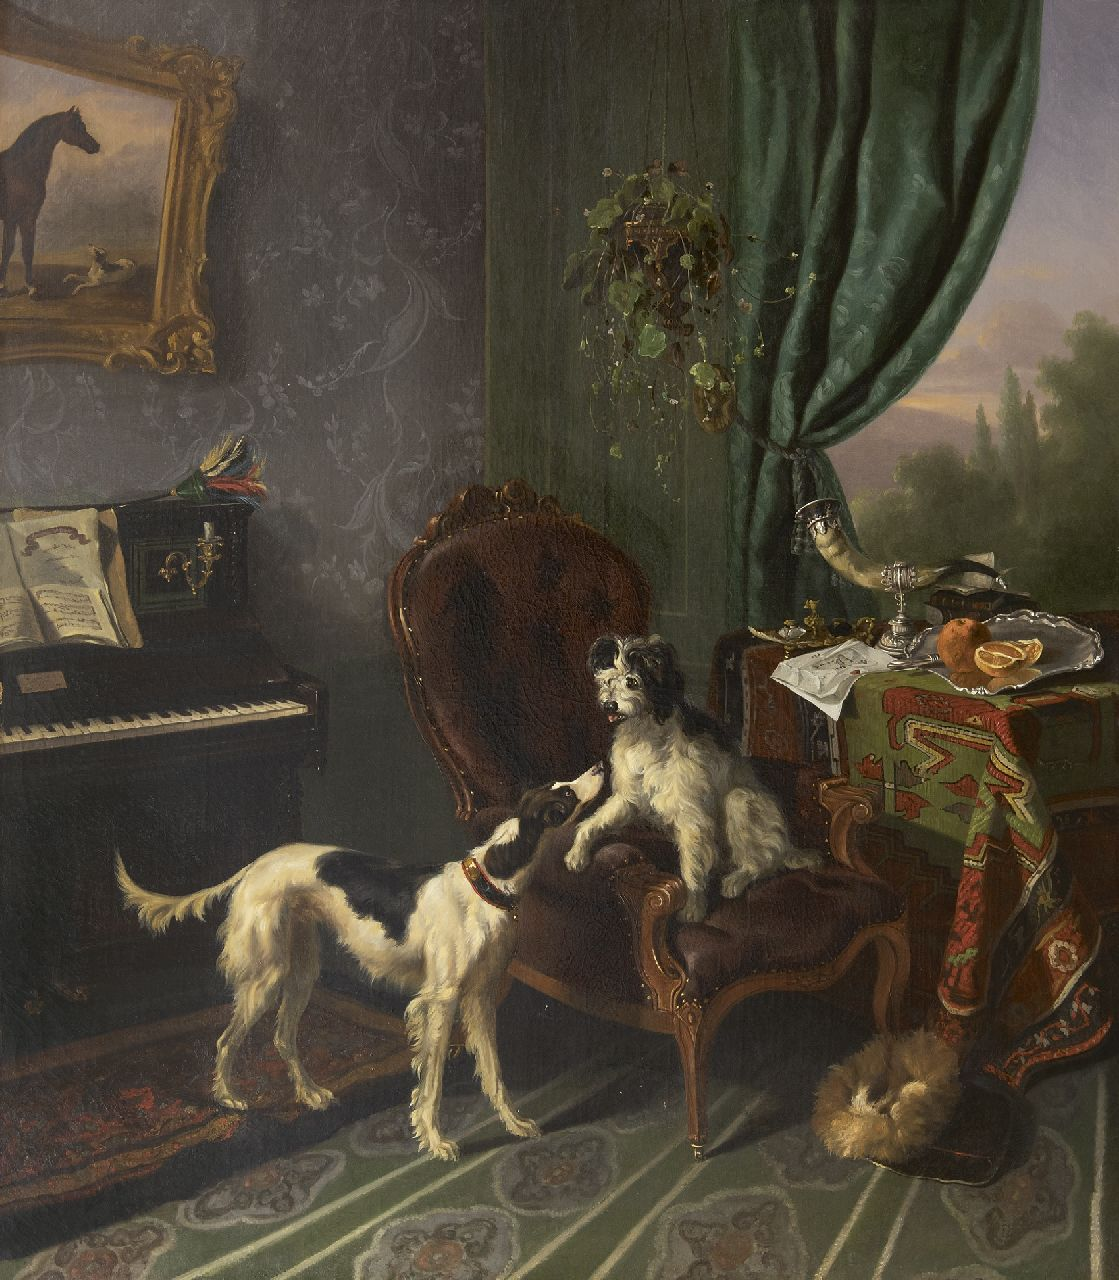 Verschuur W.  | Wouterus Verschuur | Paintings offered for sale | Dogs in an interior, oil on canvas 90.0 x 79.0 cm, painted ca. 1848-1850